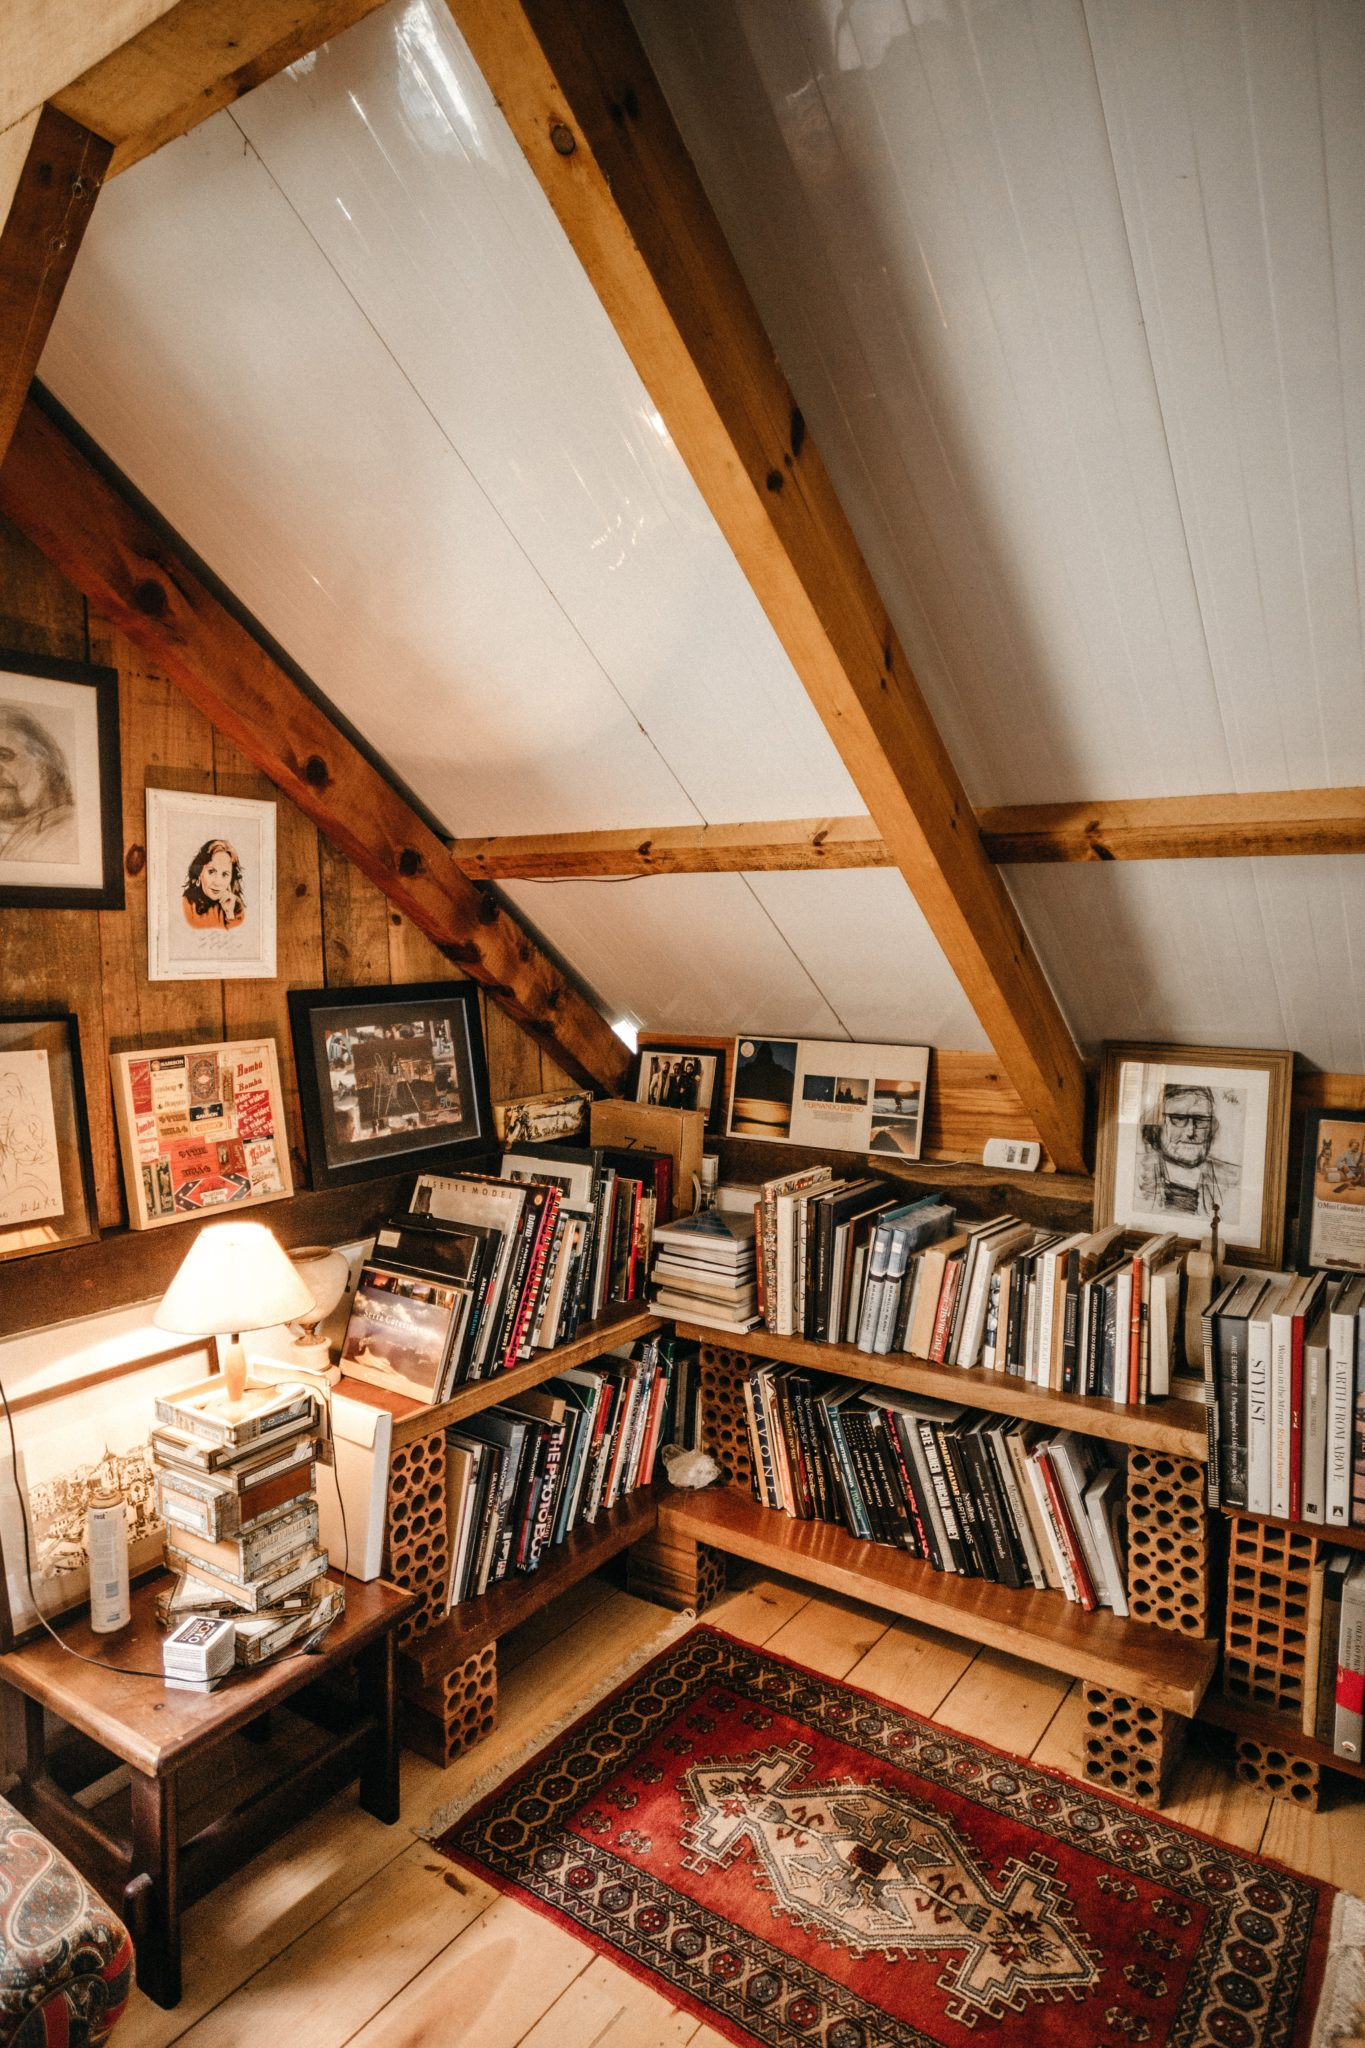 converted loft space full of shelves of books and records